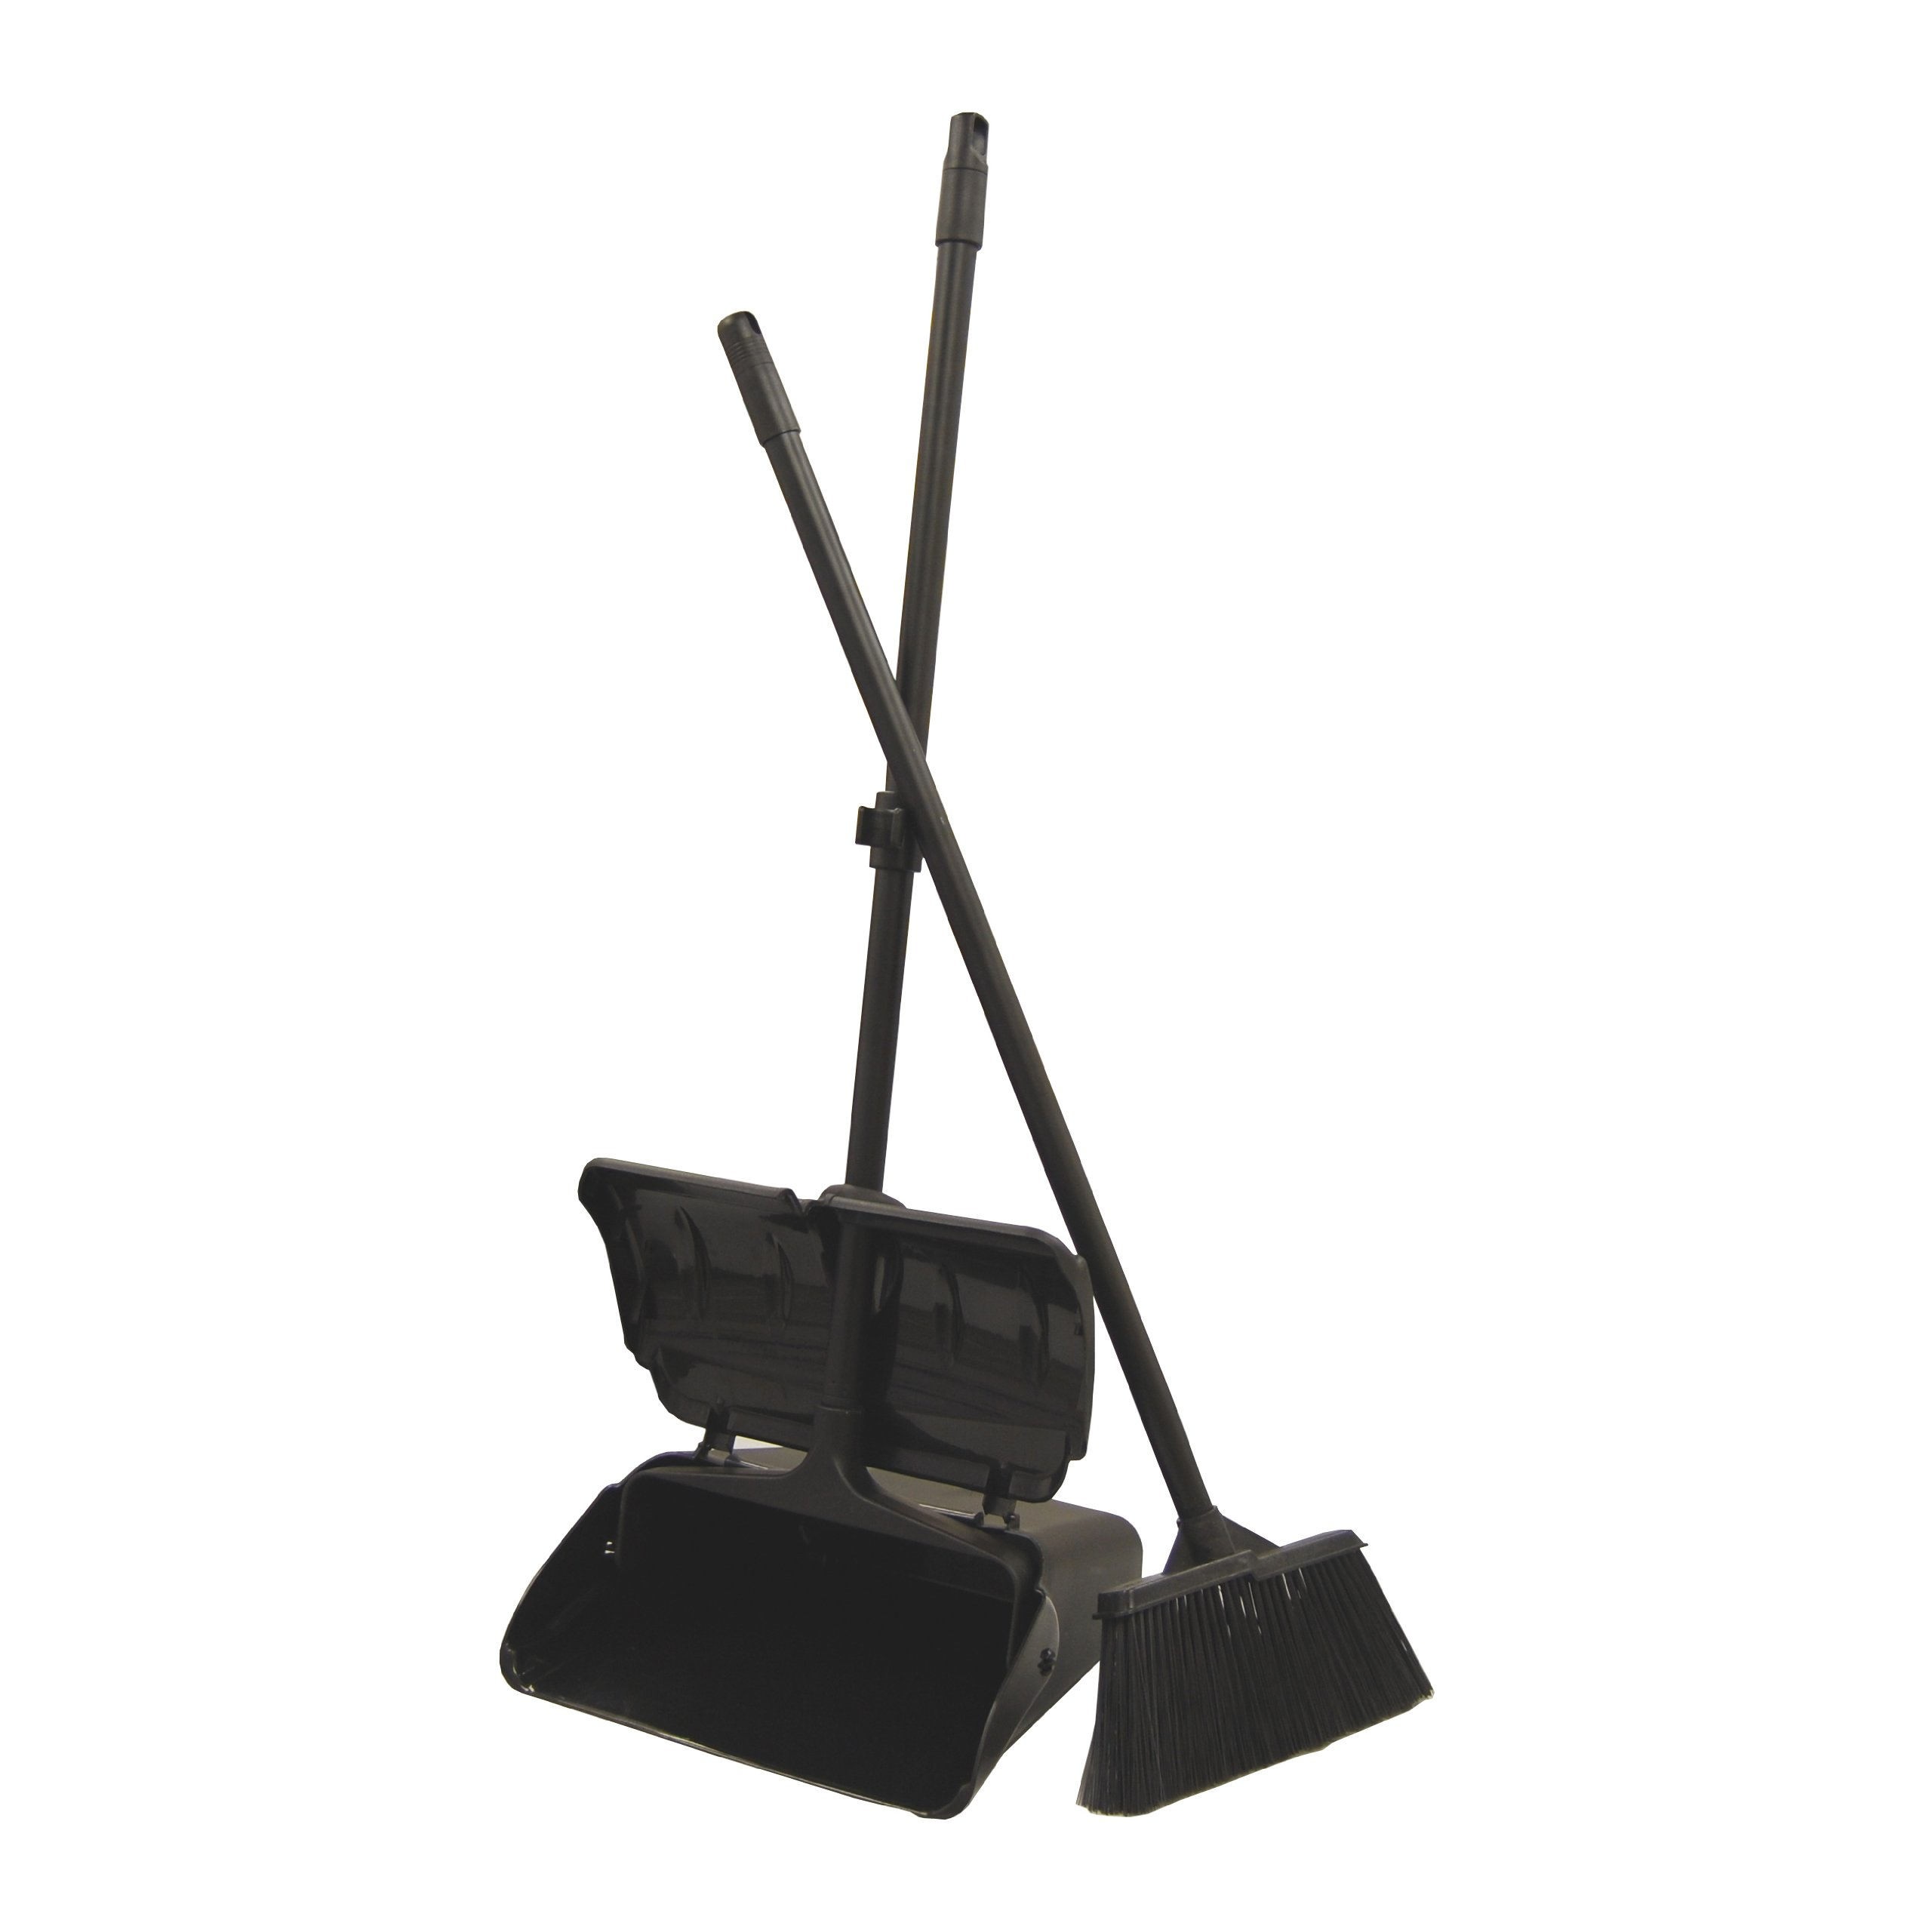 Sunnycare 13'' Lobby Dust Pan W/cover and Broom